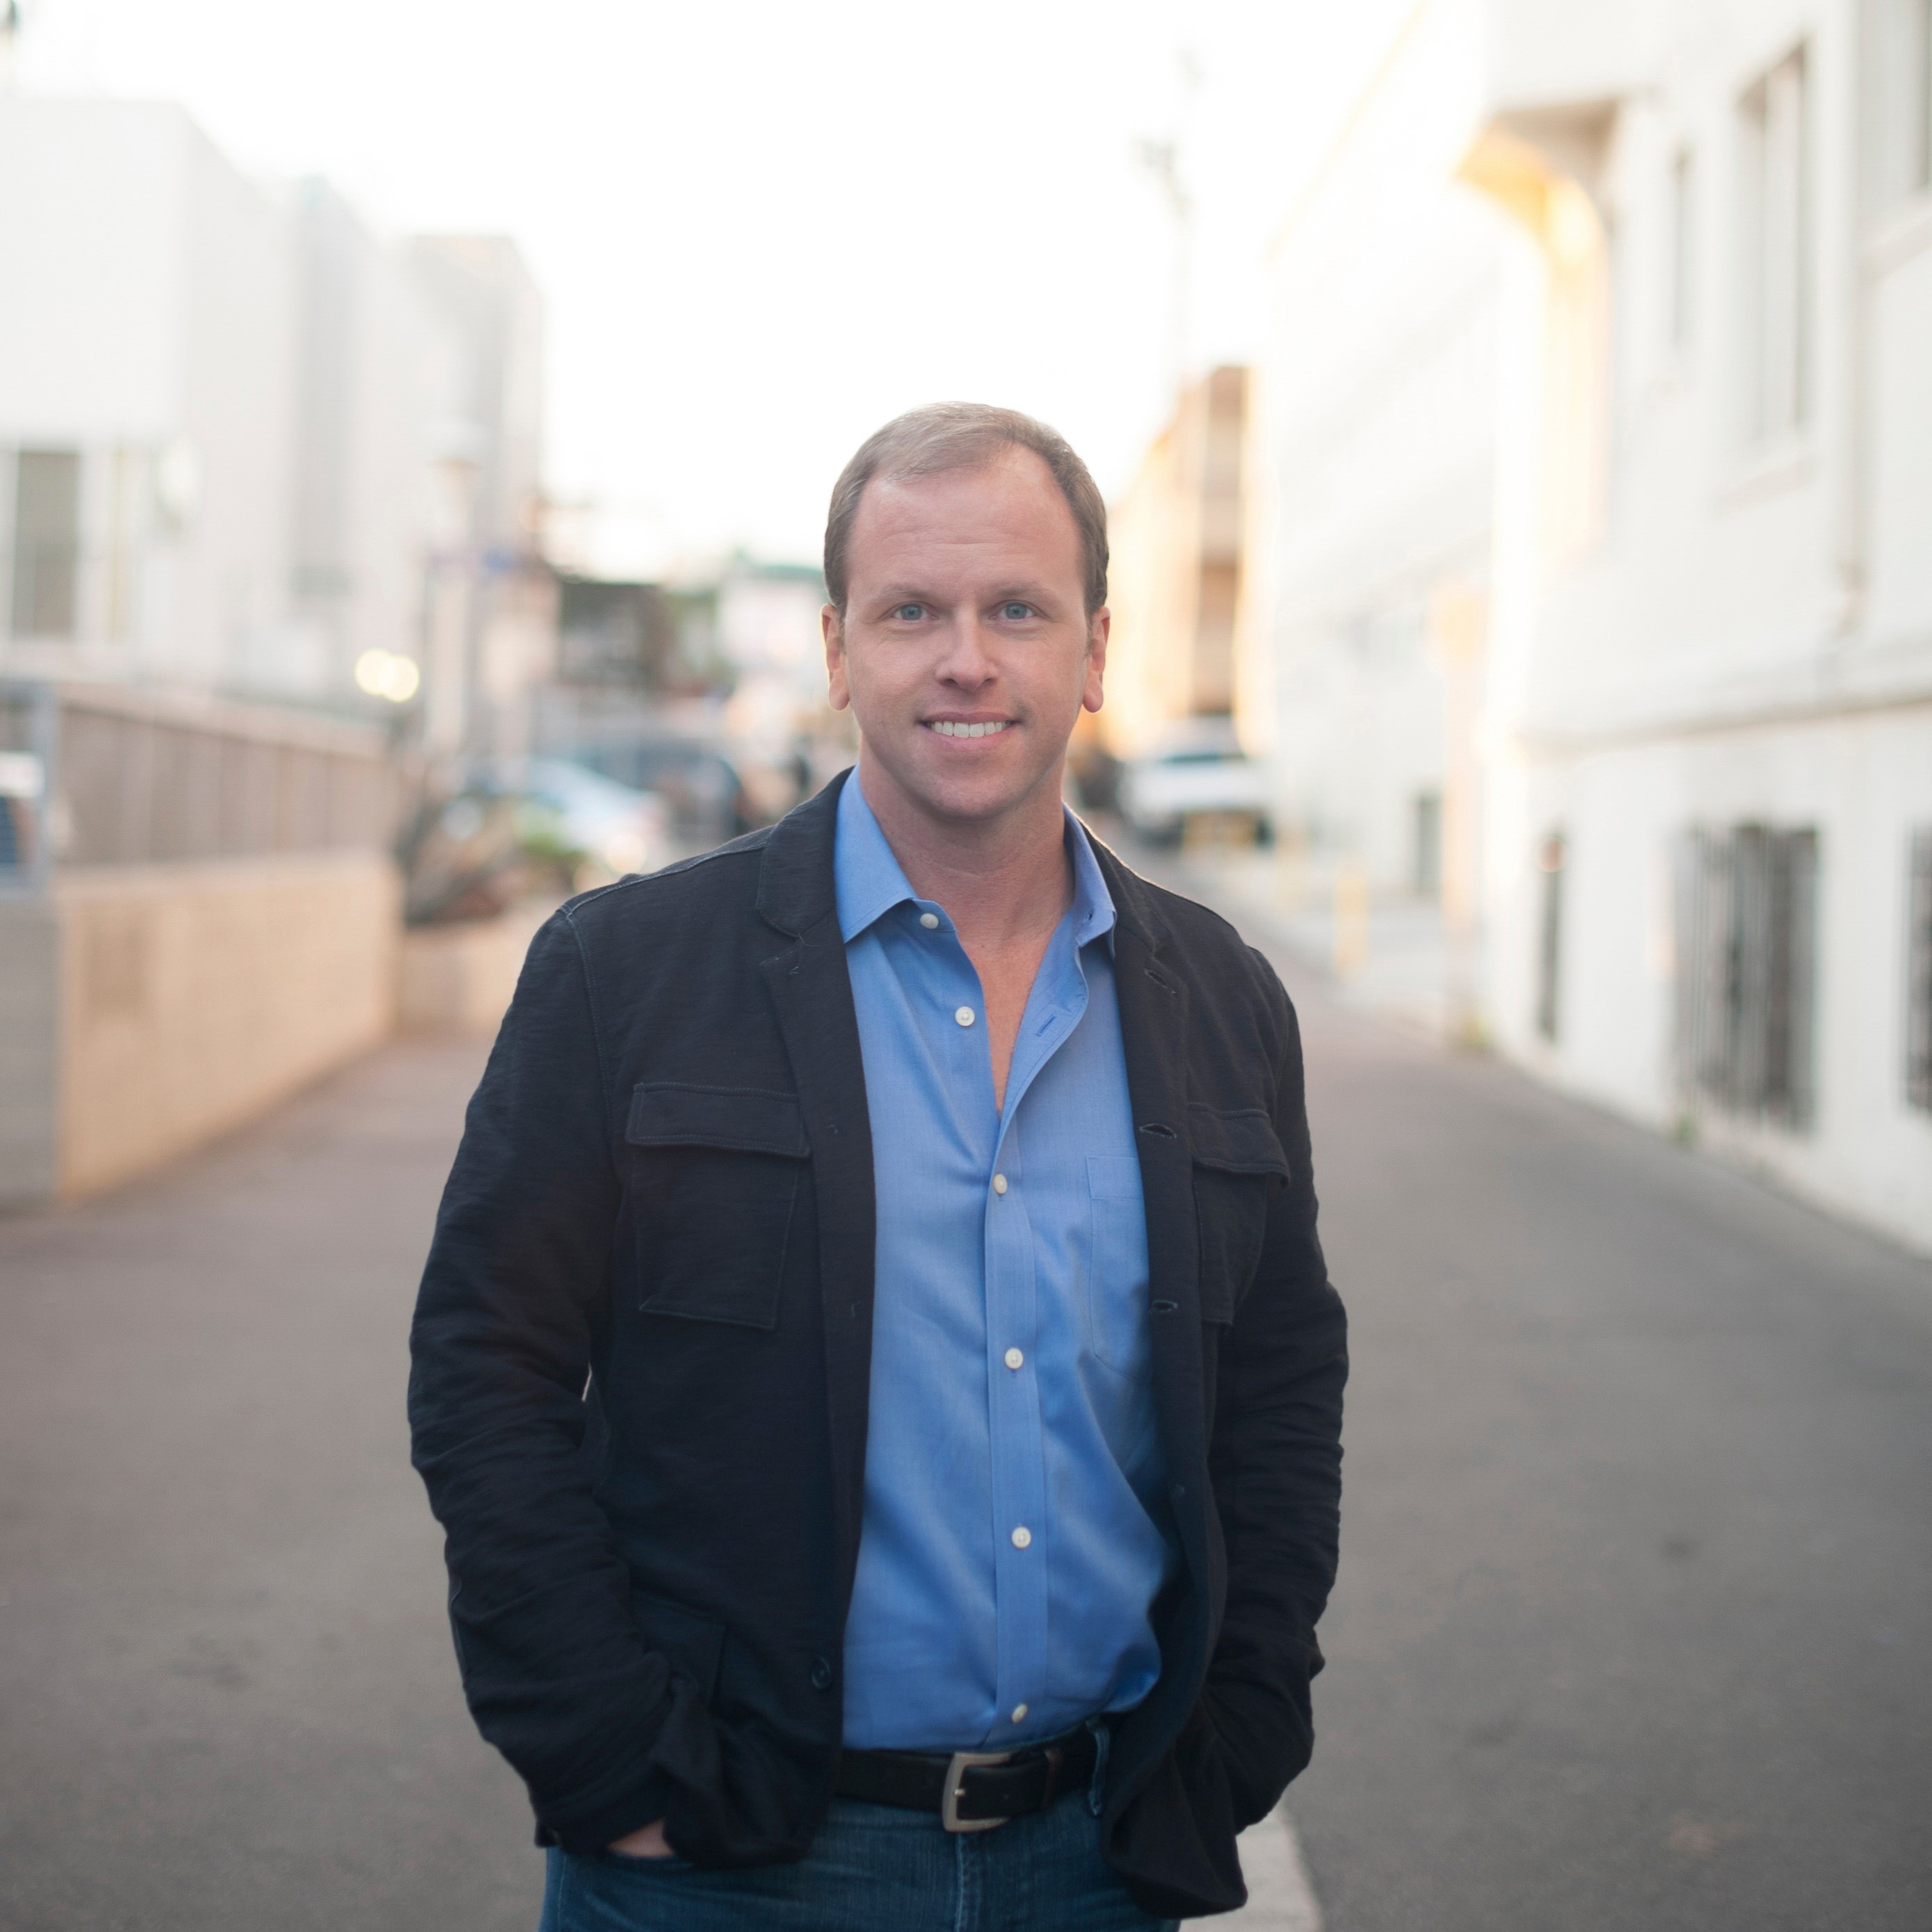 On-Demand Wellness Company, Soothe, Appoints New CEO